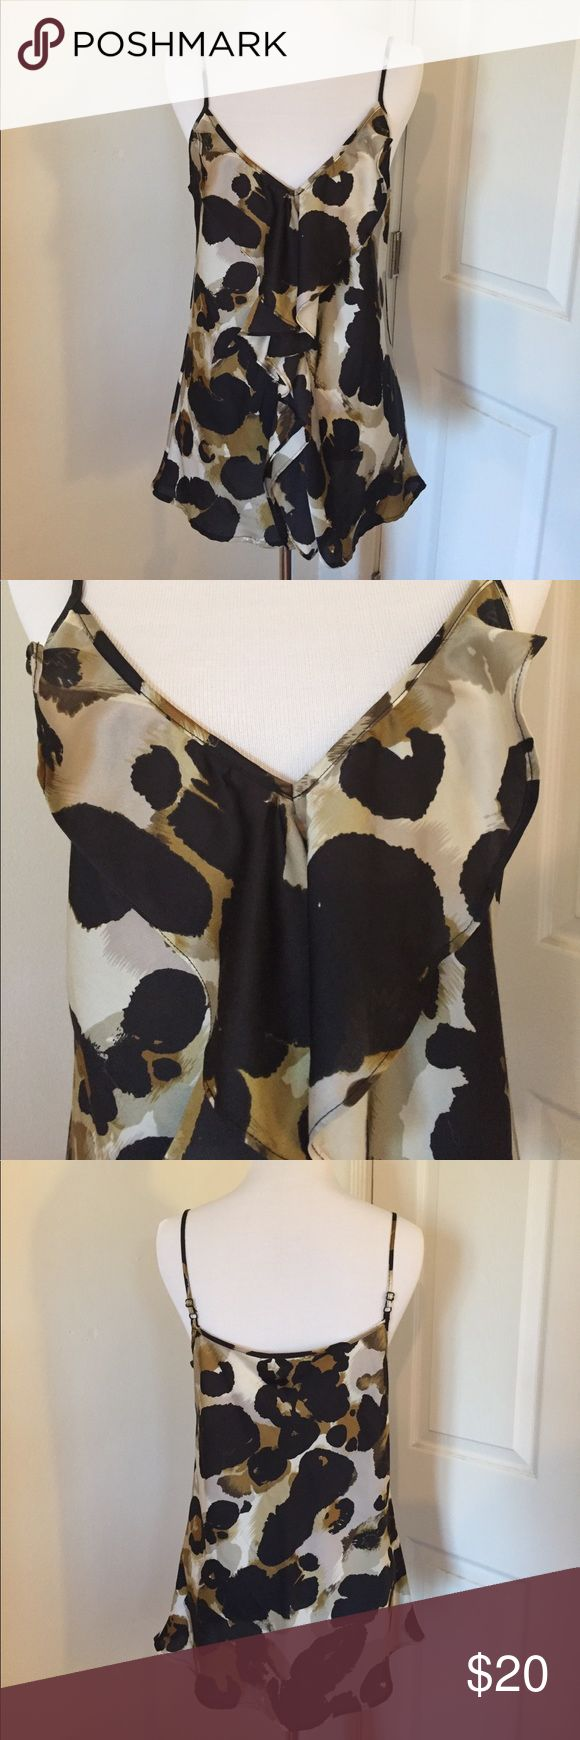 Cabi Animal Print Cami Flirty animal print cami with ruffle in front. Adjustable straps, bias cut.  Great to dress up with a suit or on its own with jeans!  100% polyester CAbi Tops Camisoles